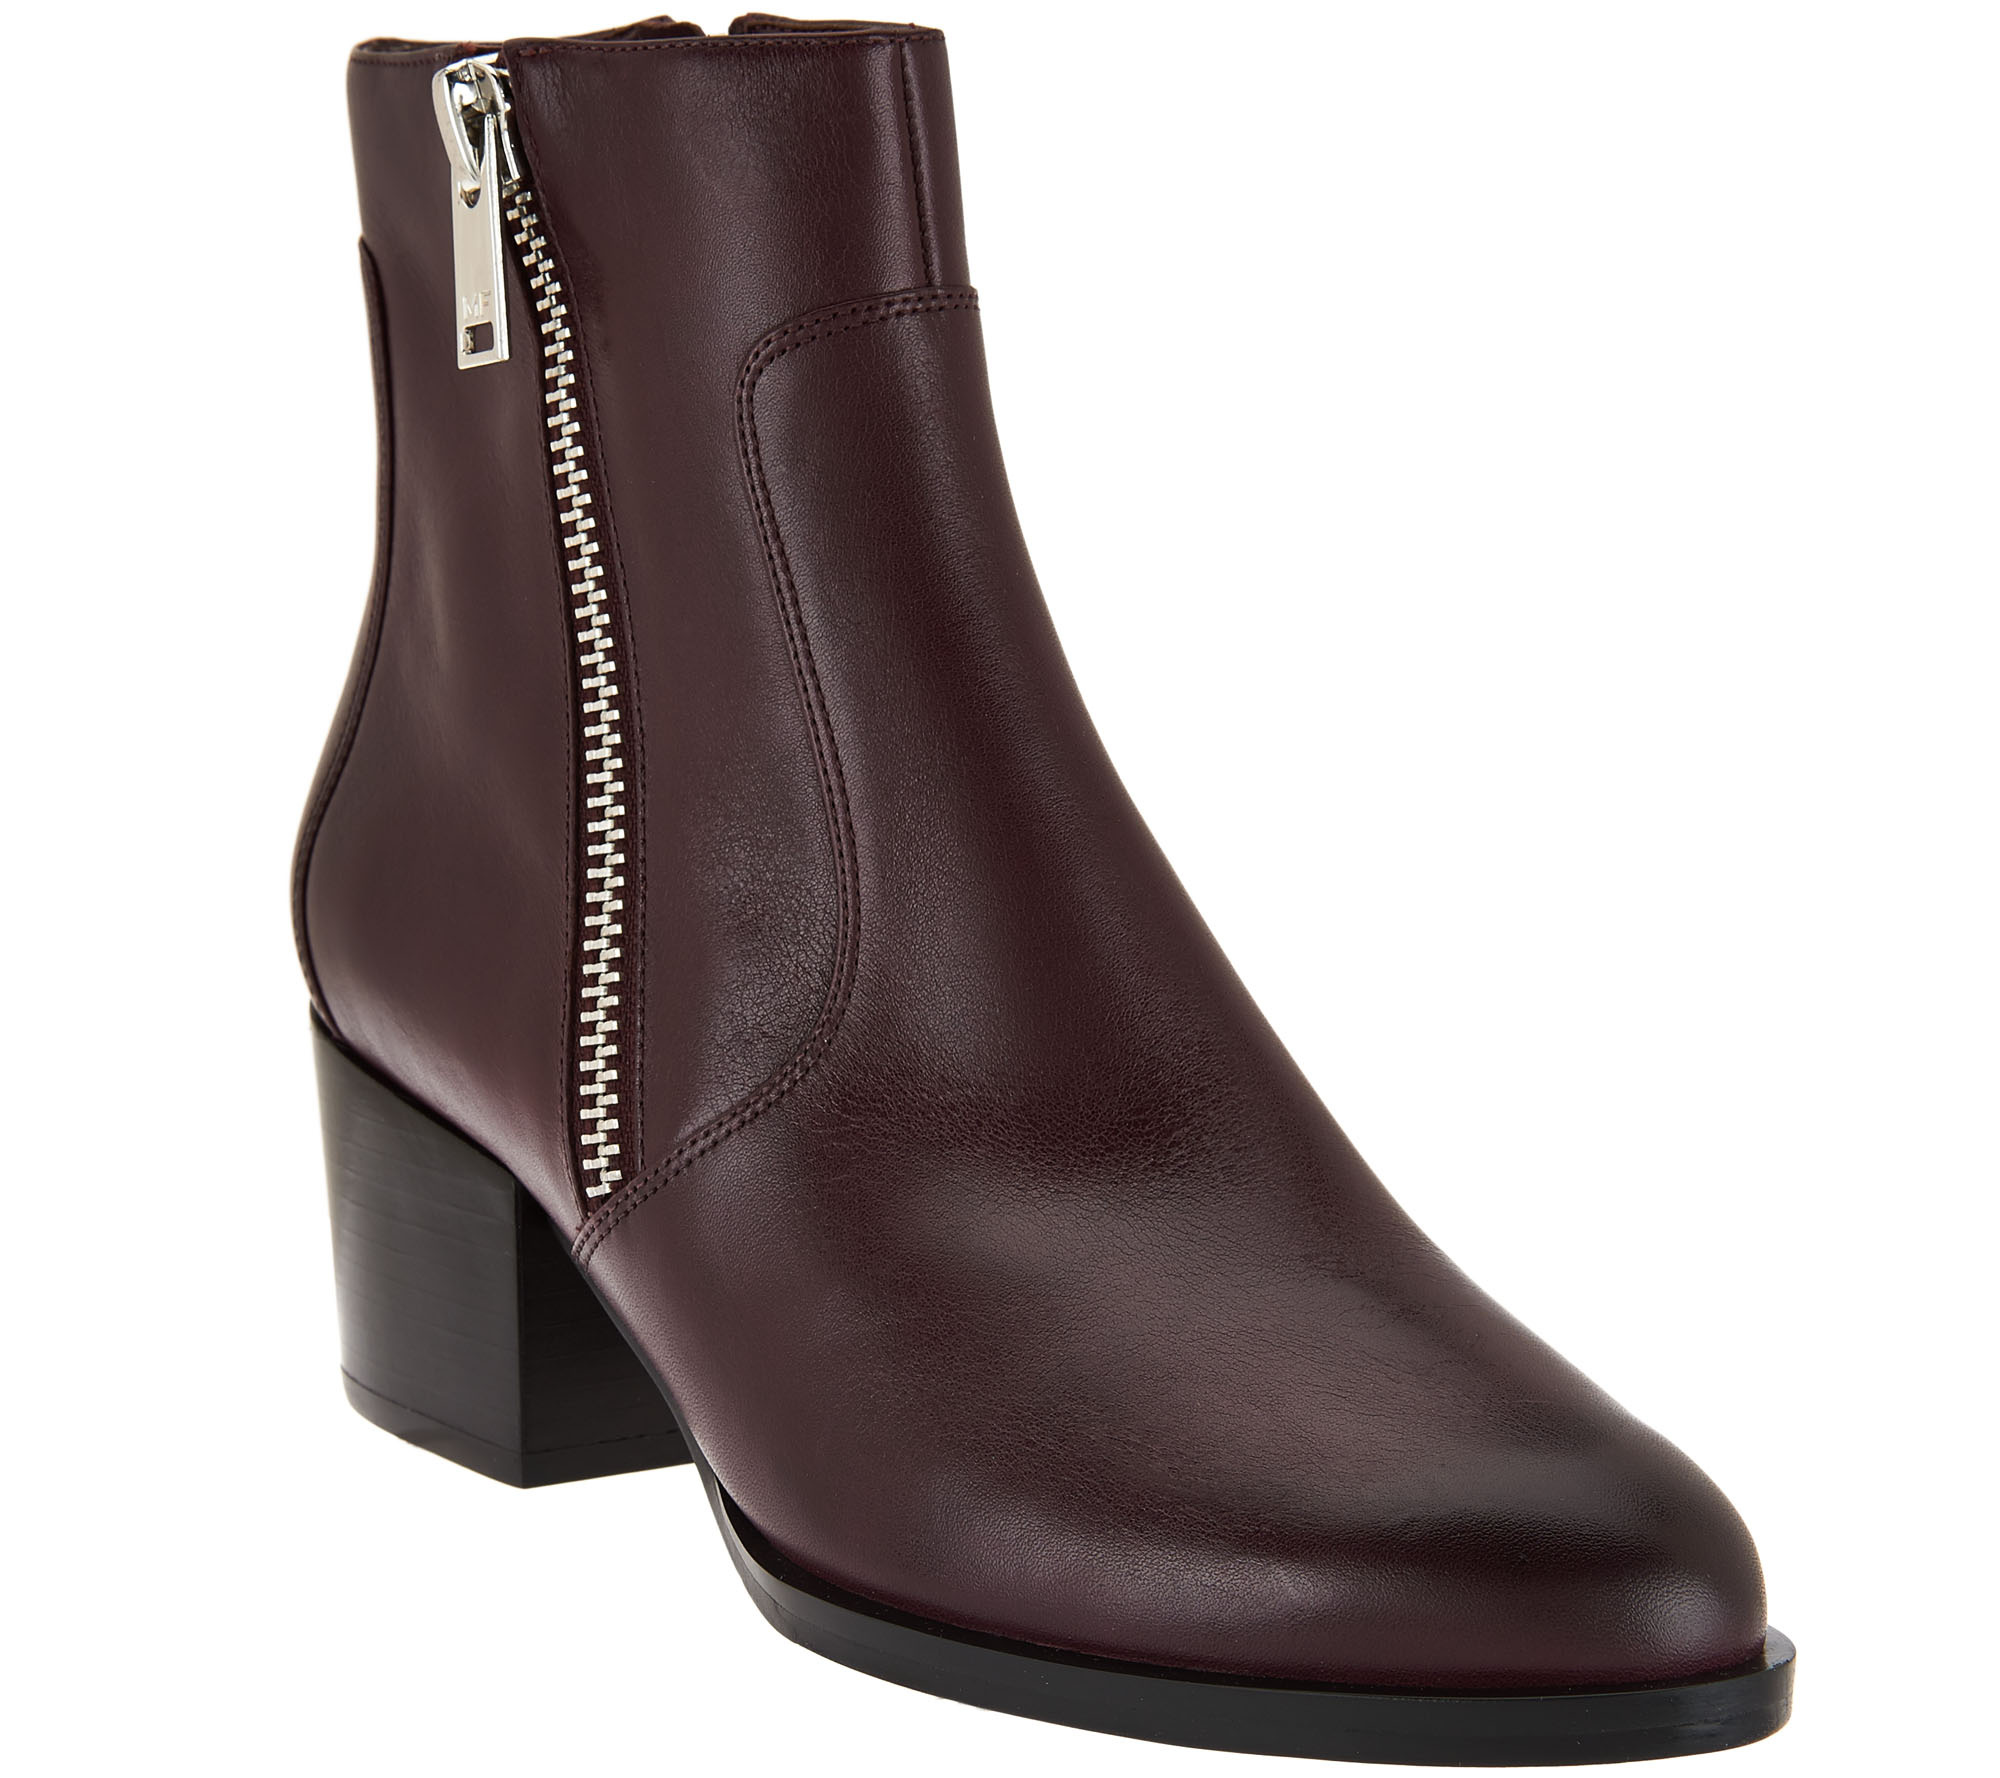 BPRIVATE Ankle boots